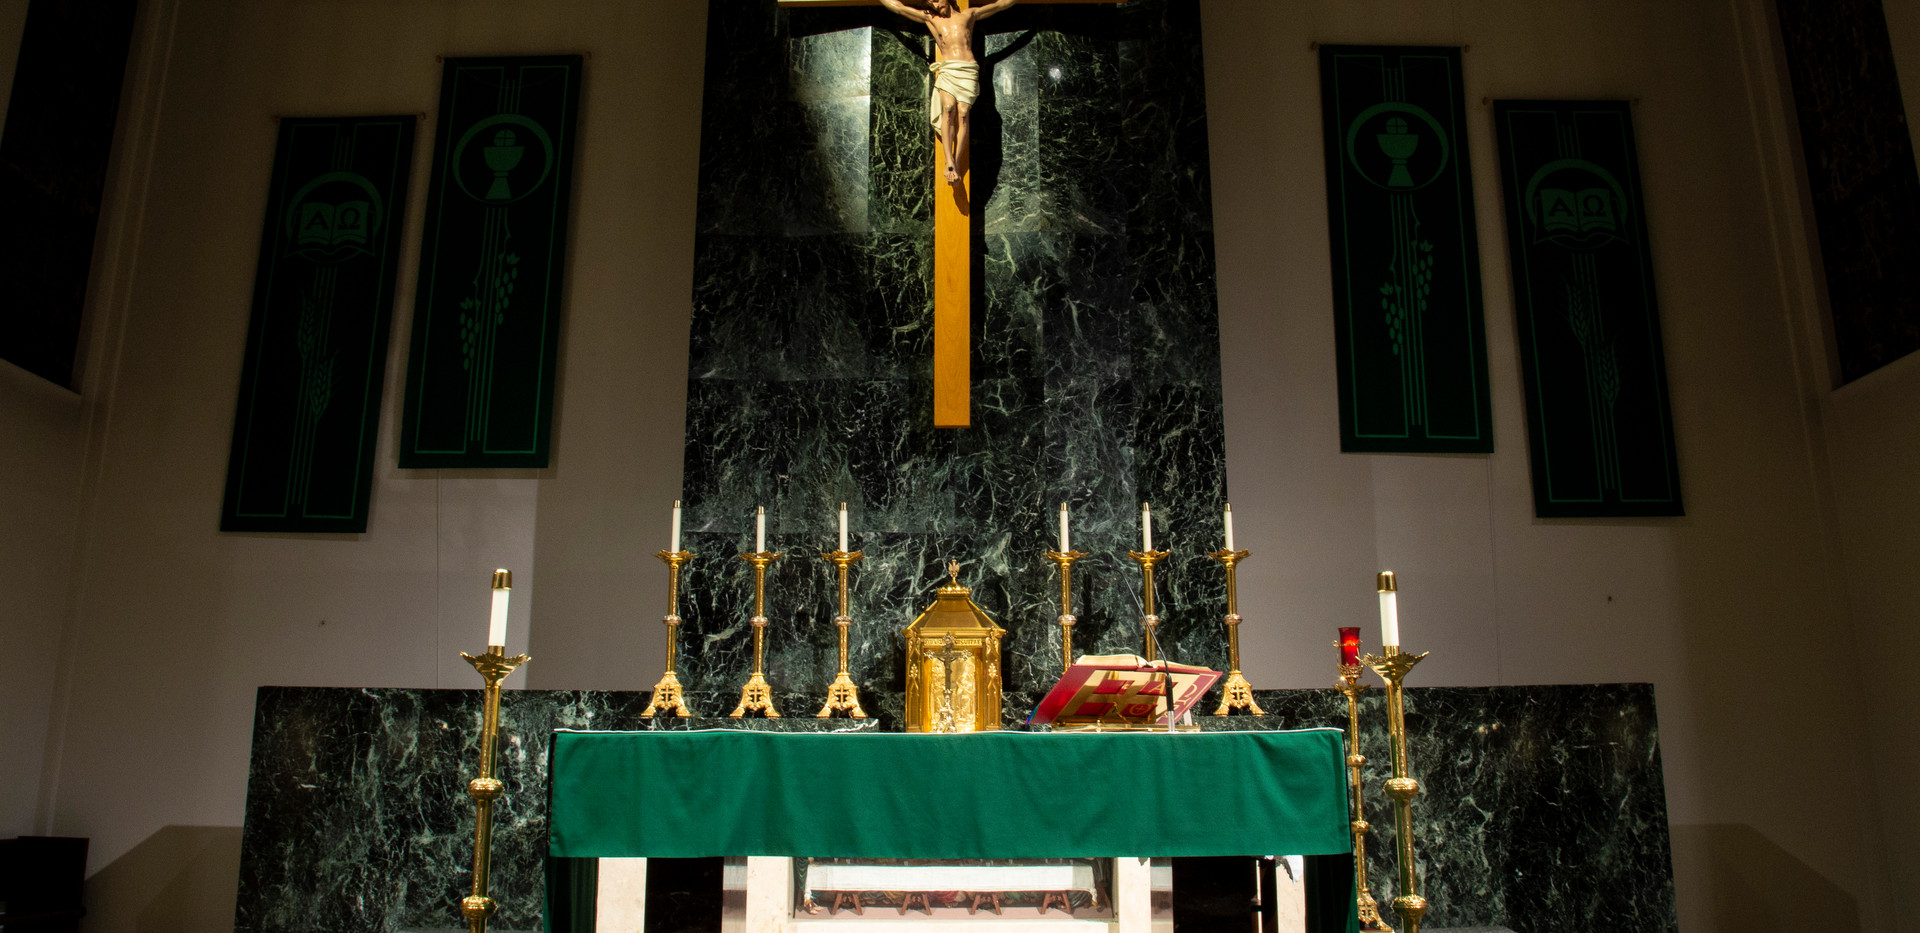 Crucifix inside St. Alphonsus